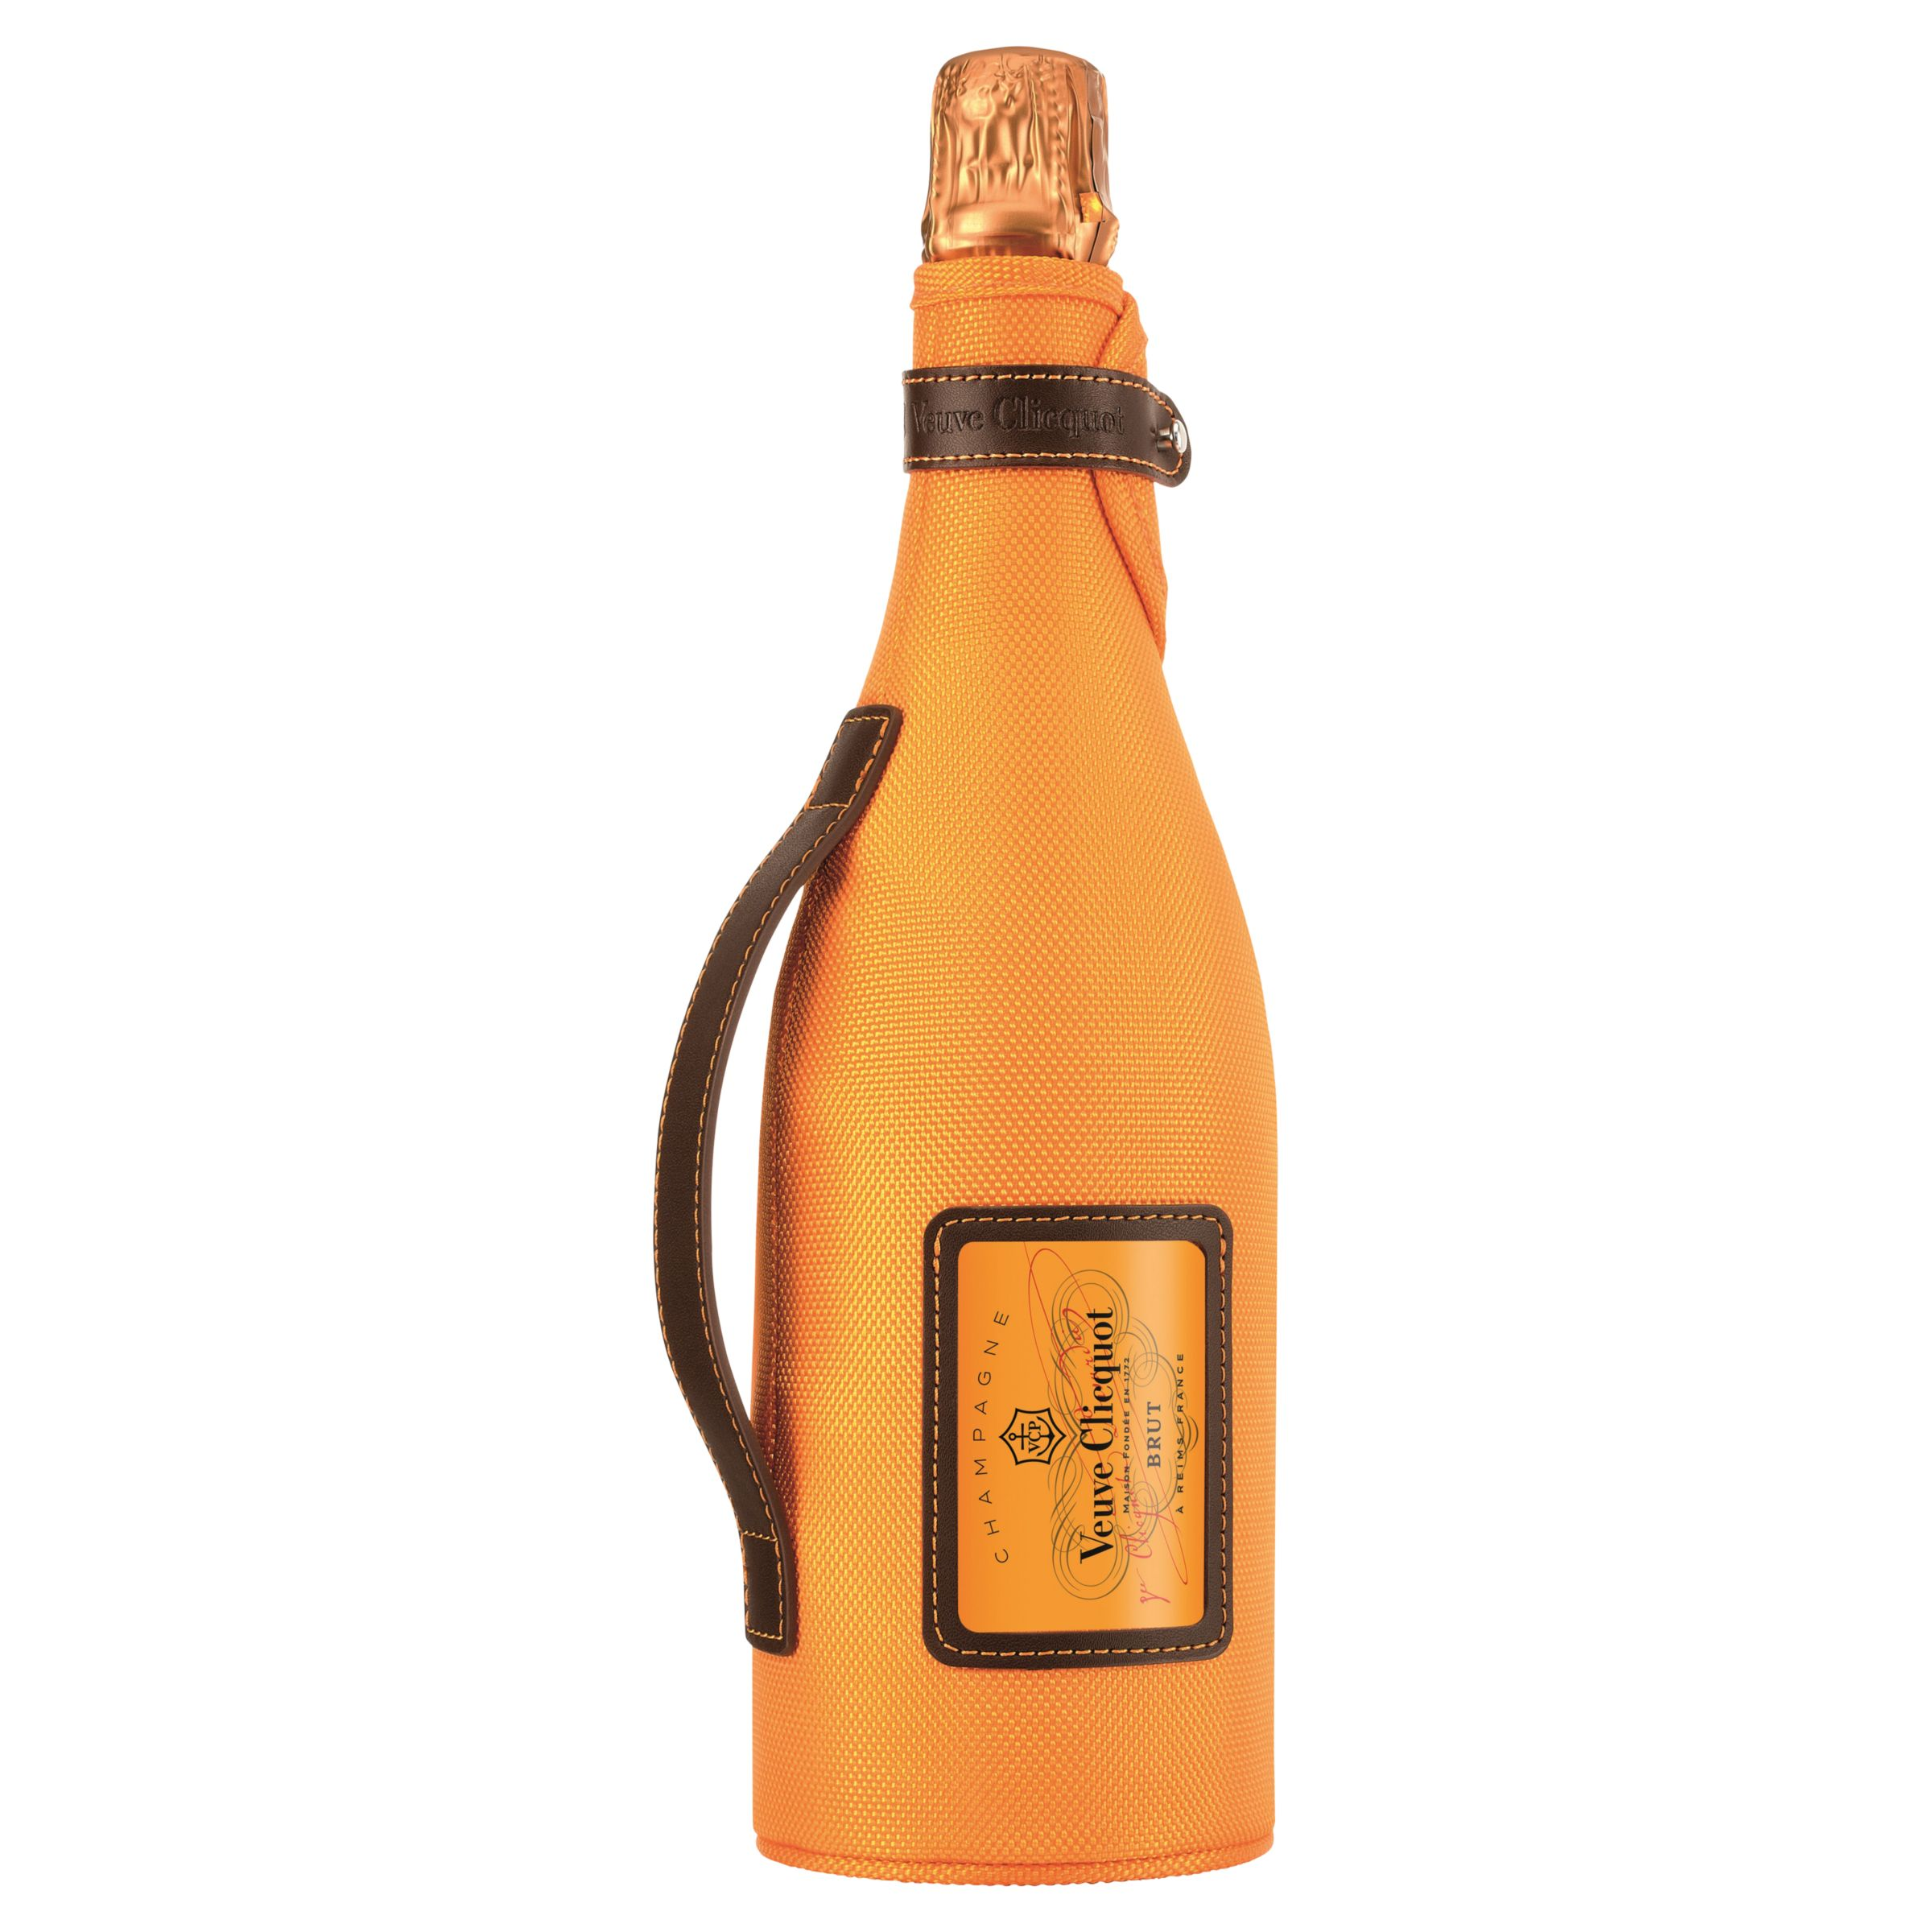 Veuve clicquot yellow label nv champagne with ice jacket carry pack